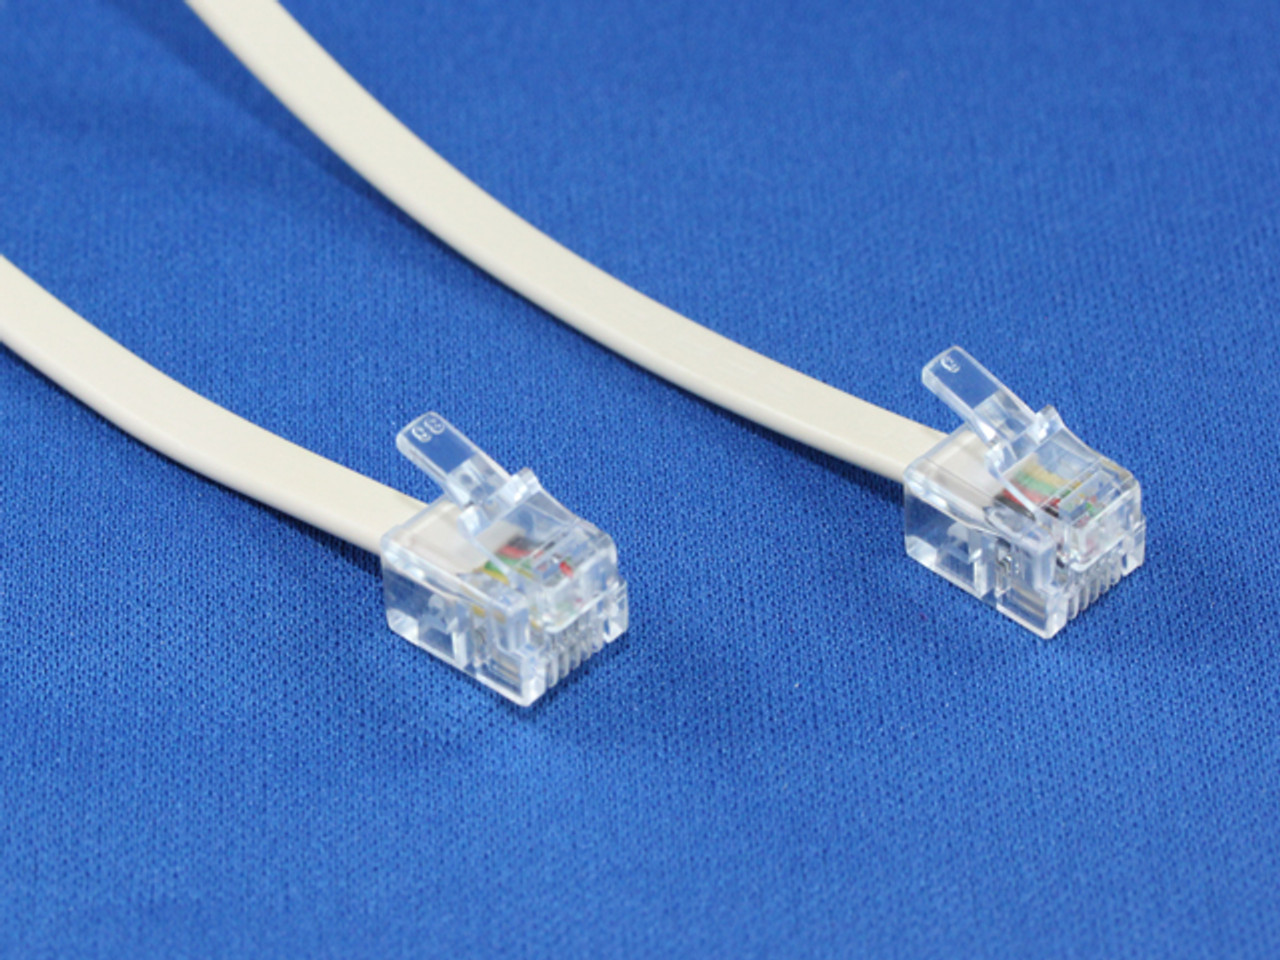 Product image for 10M RJ12/RJ12 Telephone Cable | CX Computer Superstore